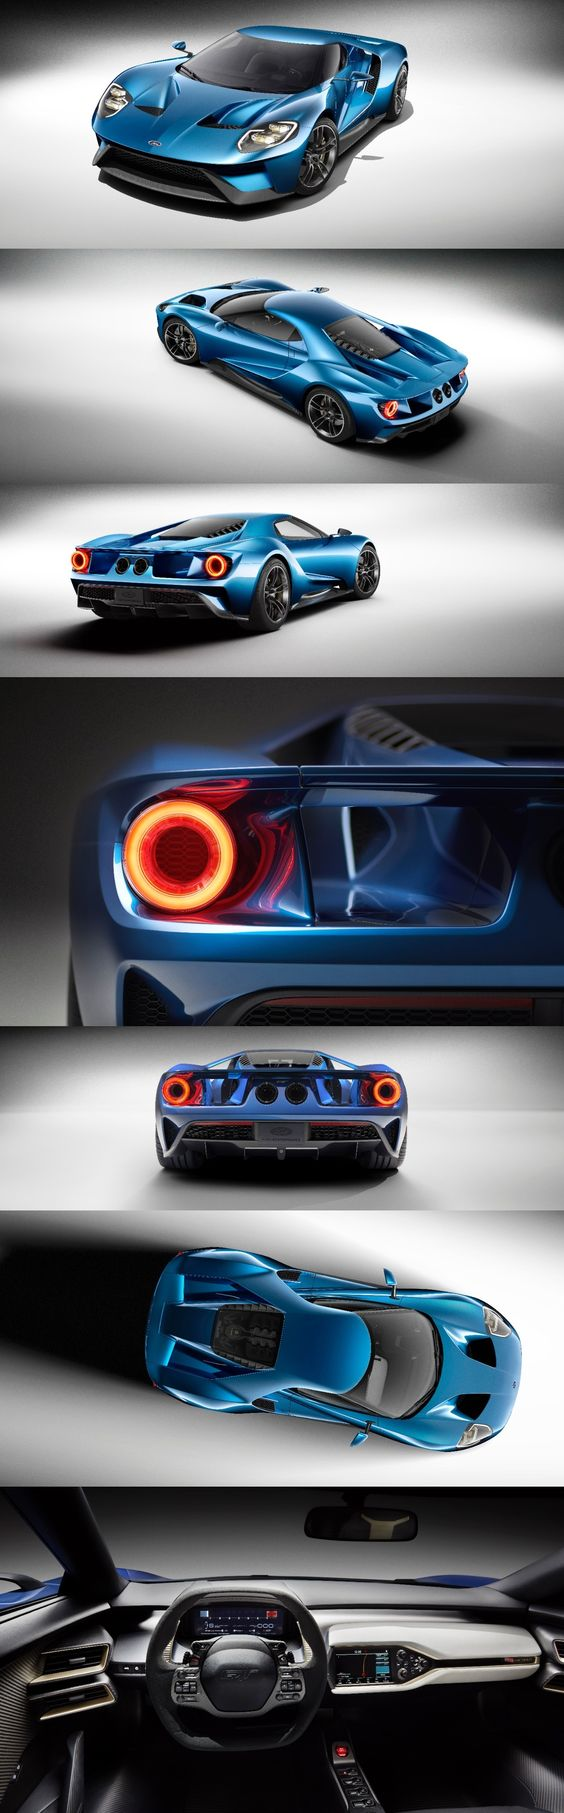 2016 ford gt sport blue wallpaper 2017 ford gt concept car beautiful - The 25 Best Ford Gt40 2016 Ideas On Pinterest Ford Gt 2016 Ford Gt 2017 And Ford